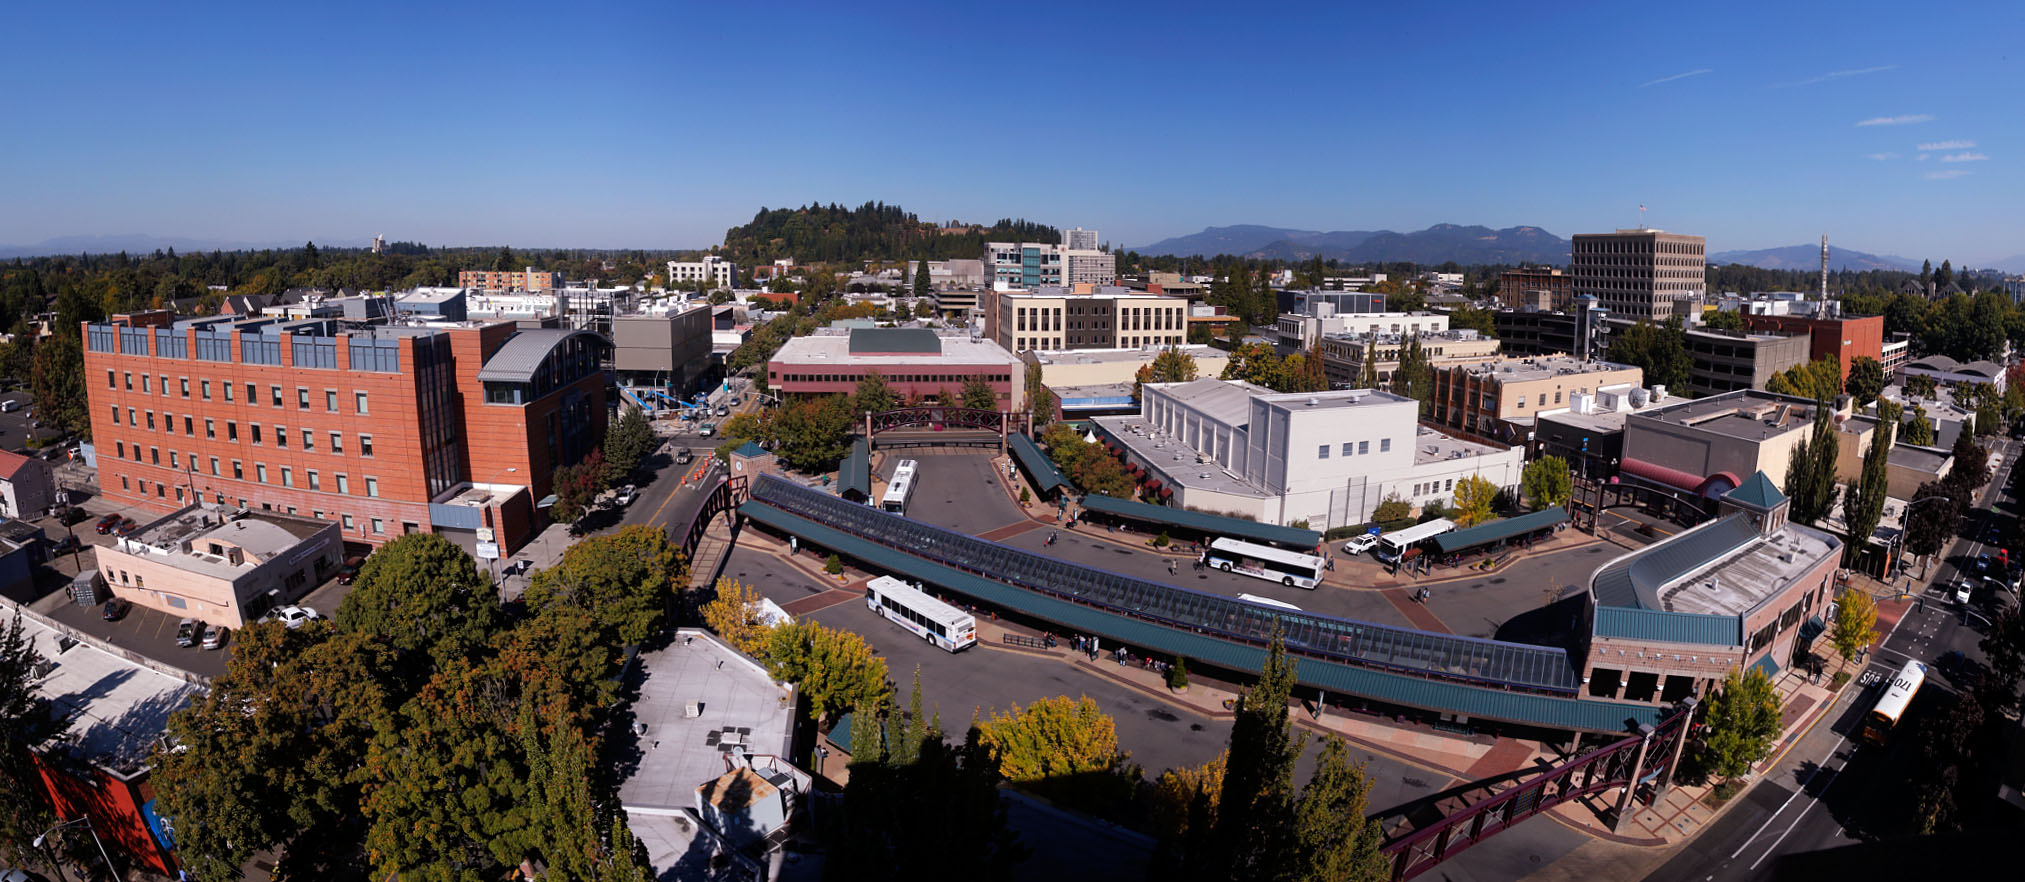 Downtown Eugene Bus Mall Panorama